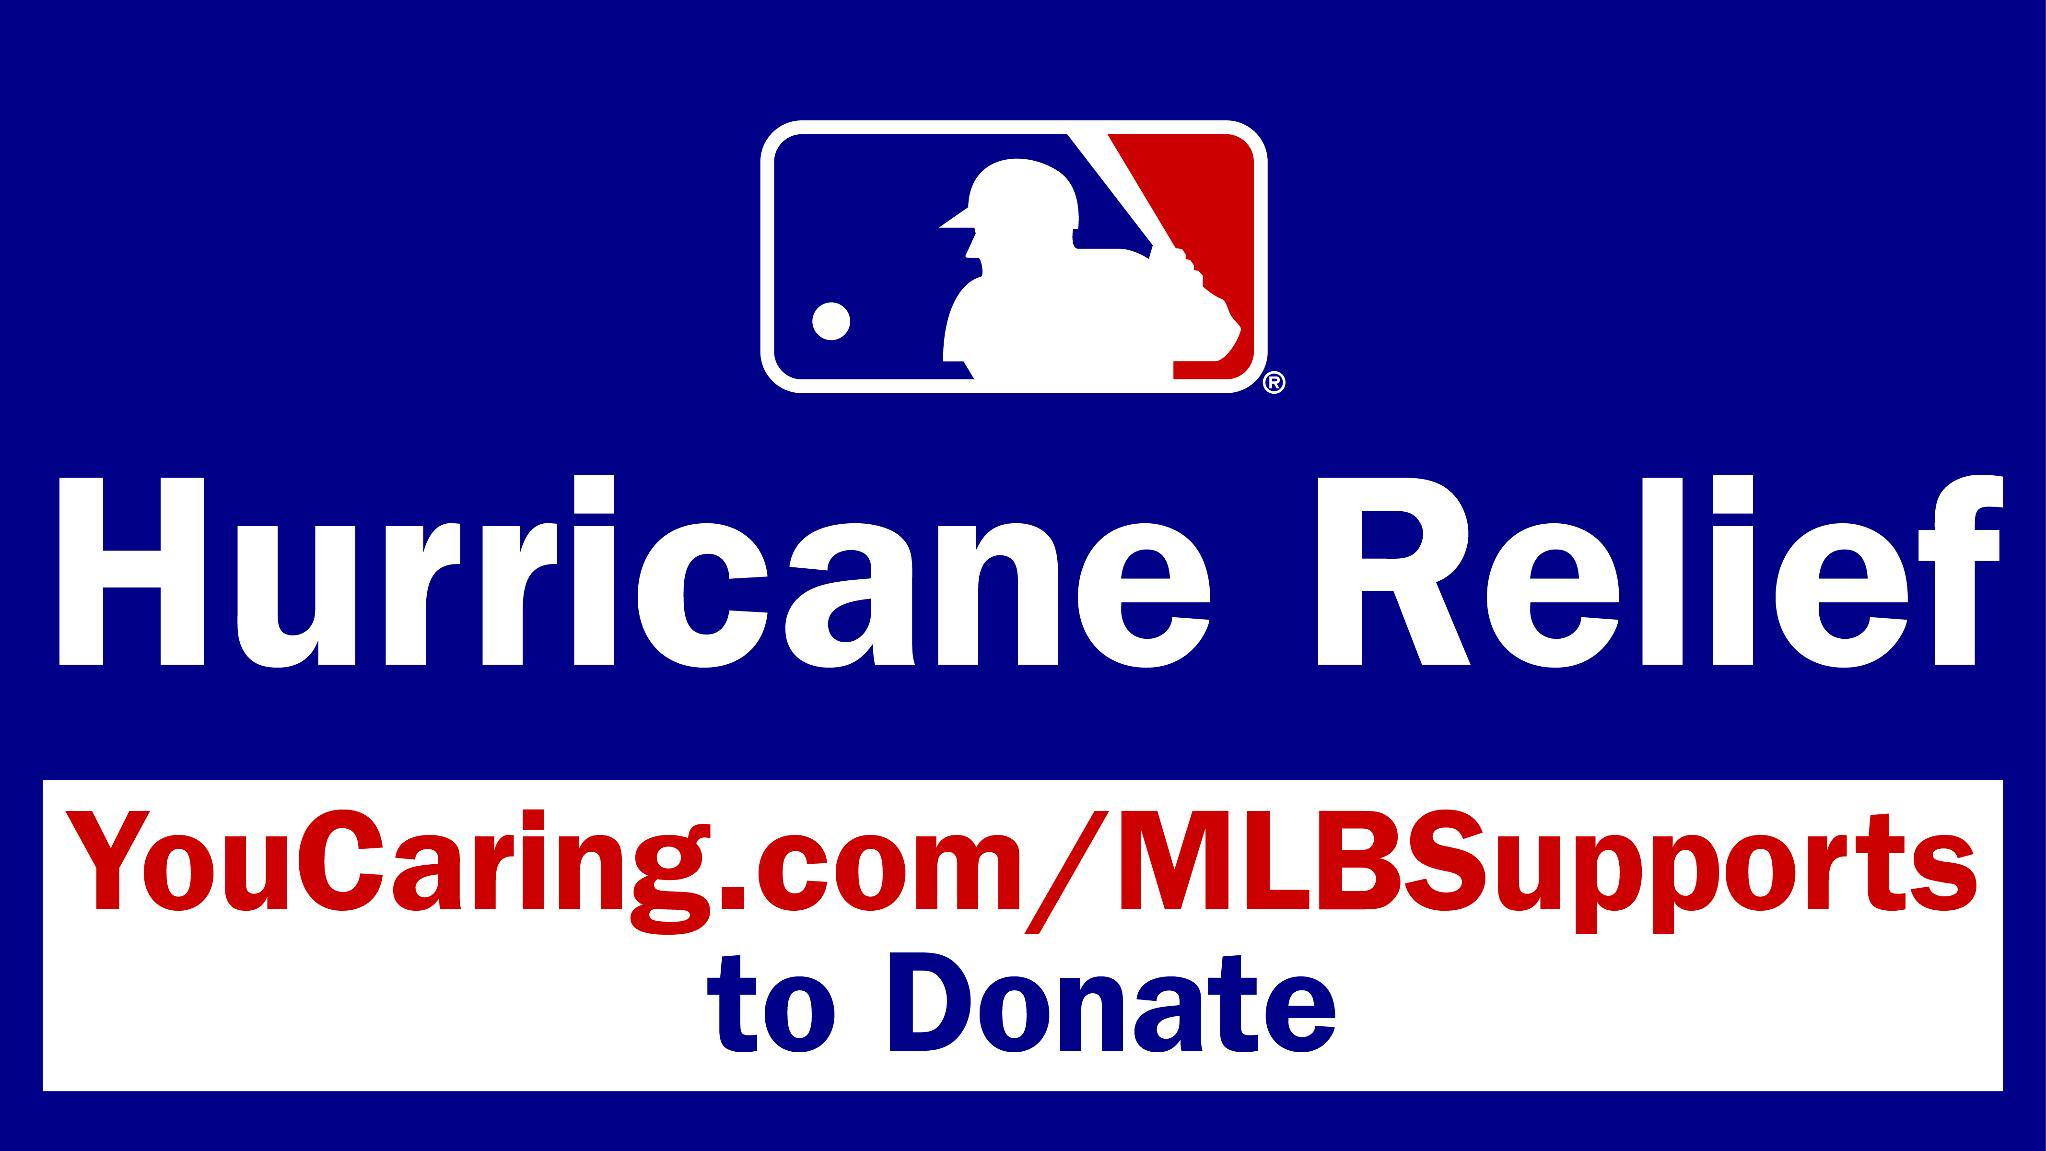 We are #FloridaStrong! Here's how you can donate to the hurricane relief via @RaysBaseball: https://t.co/BDUBdO0Emh https://t.co/3uIpJASBu8